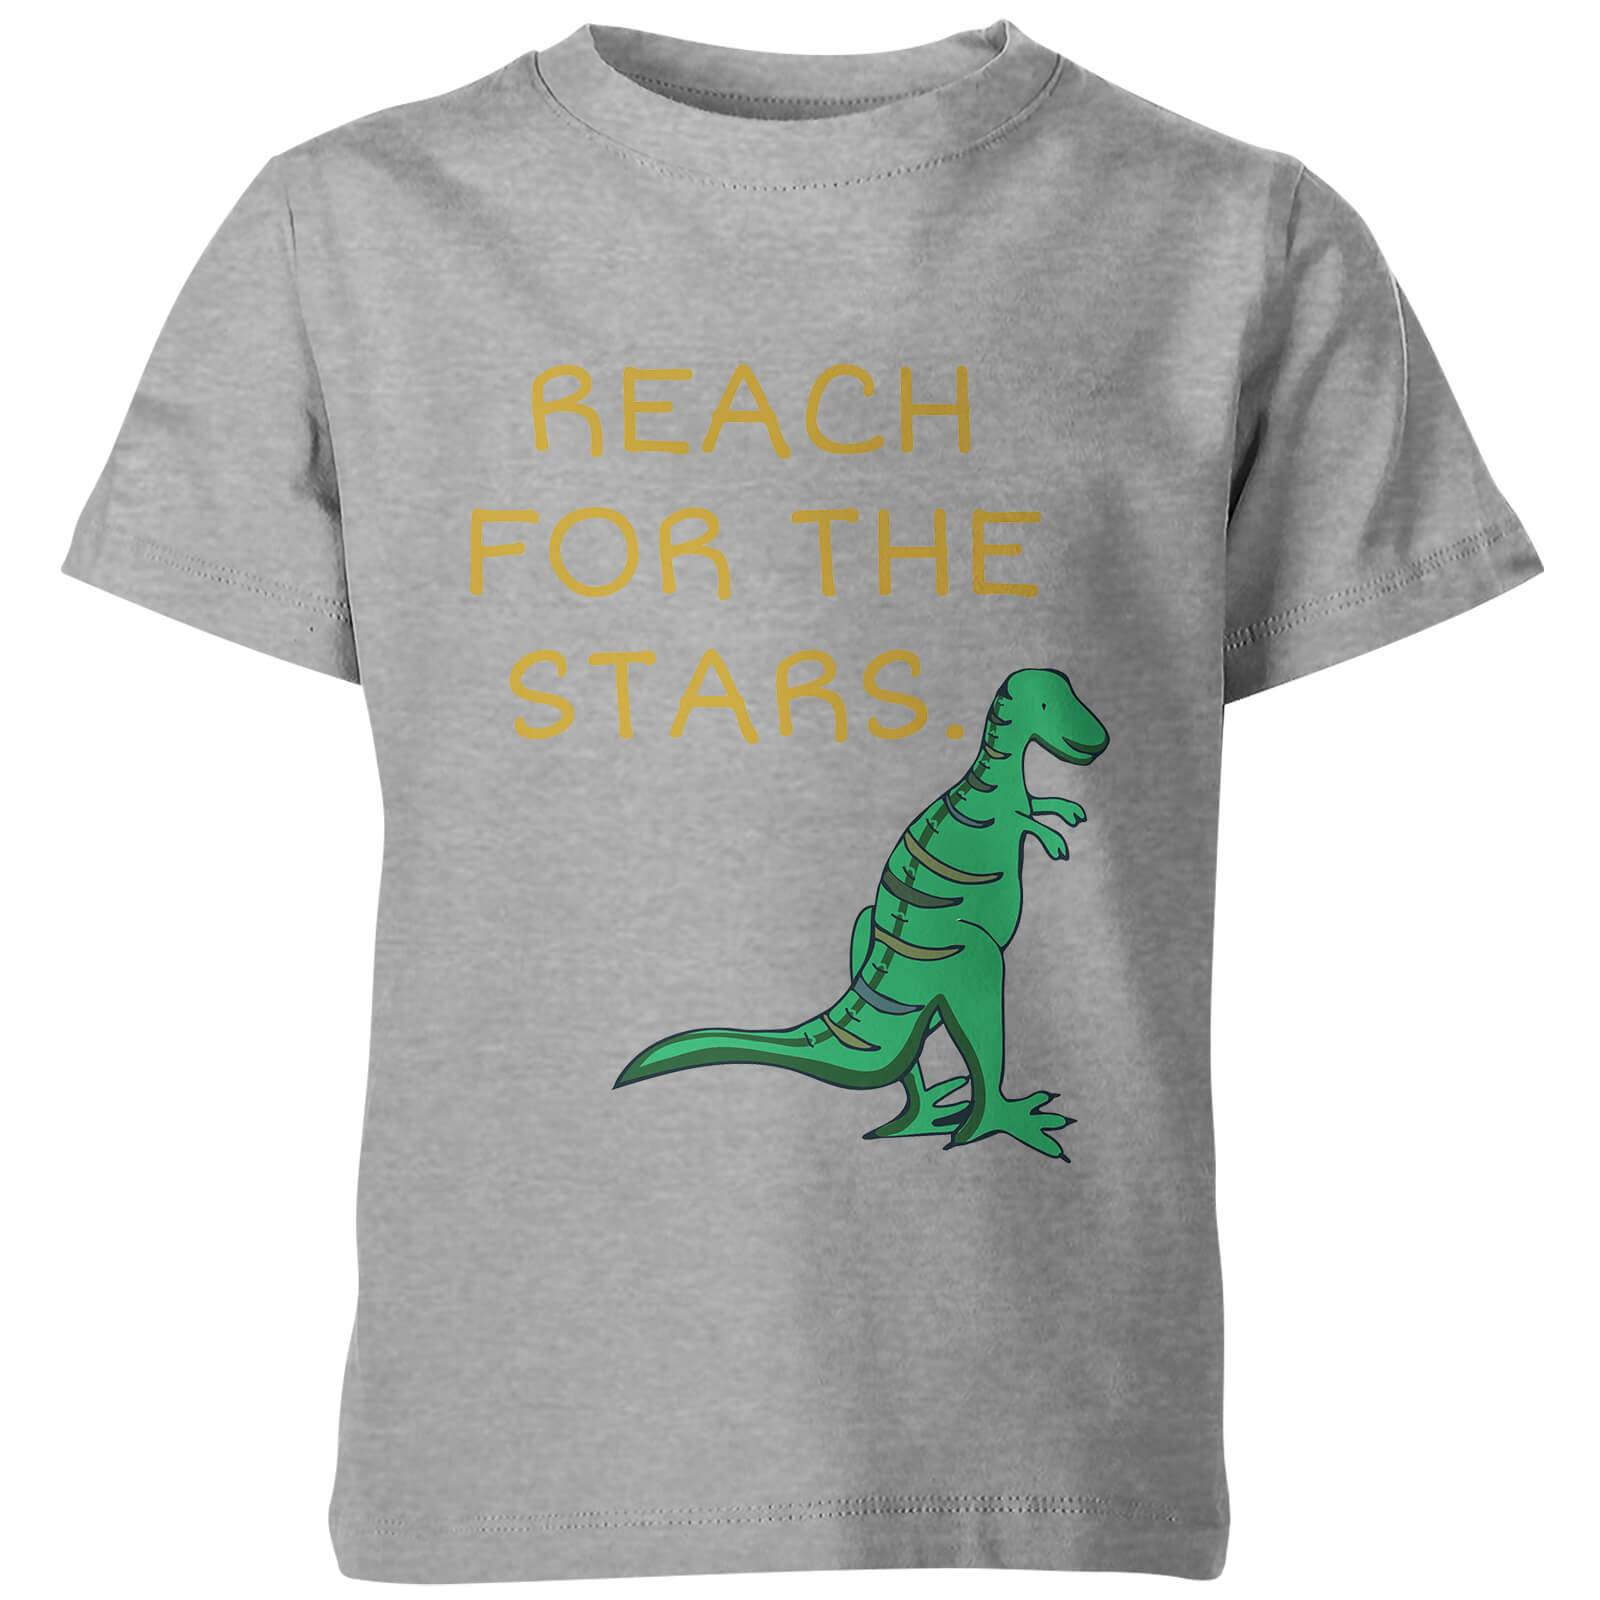 My Little Rascal Kids Dinosaur Reach for the Stars Grey T-Shirt - 11-12 Years - Grey